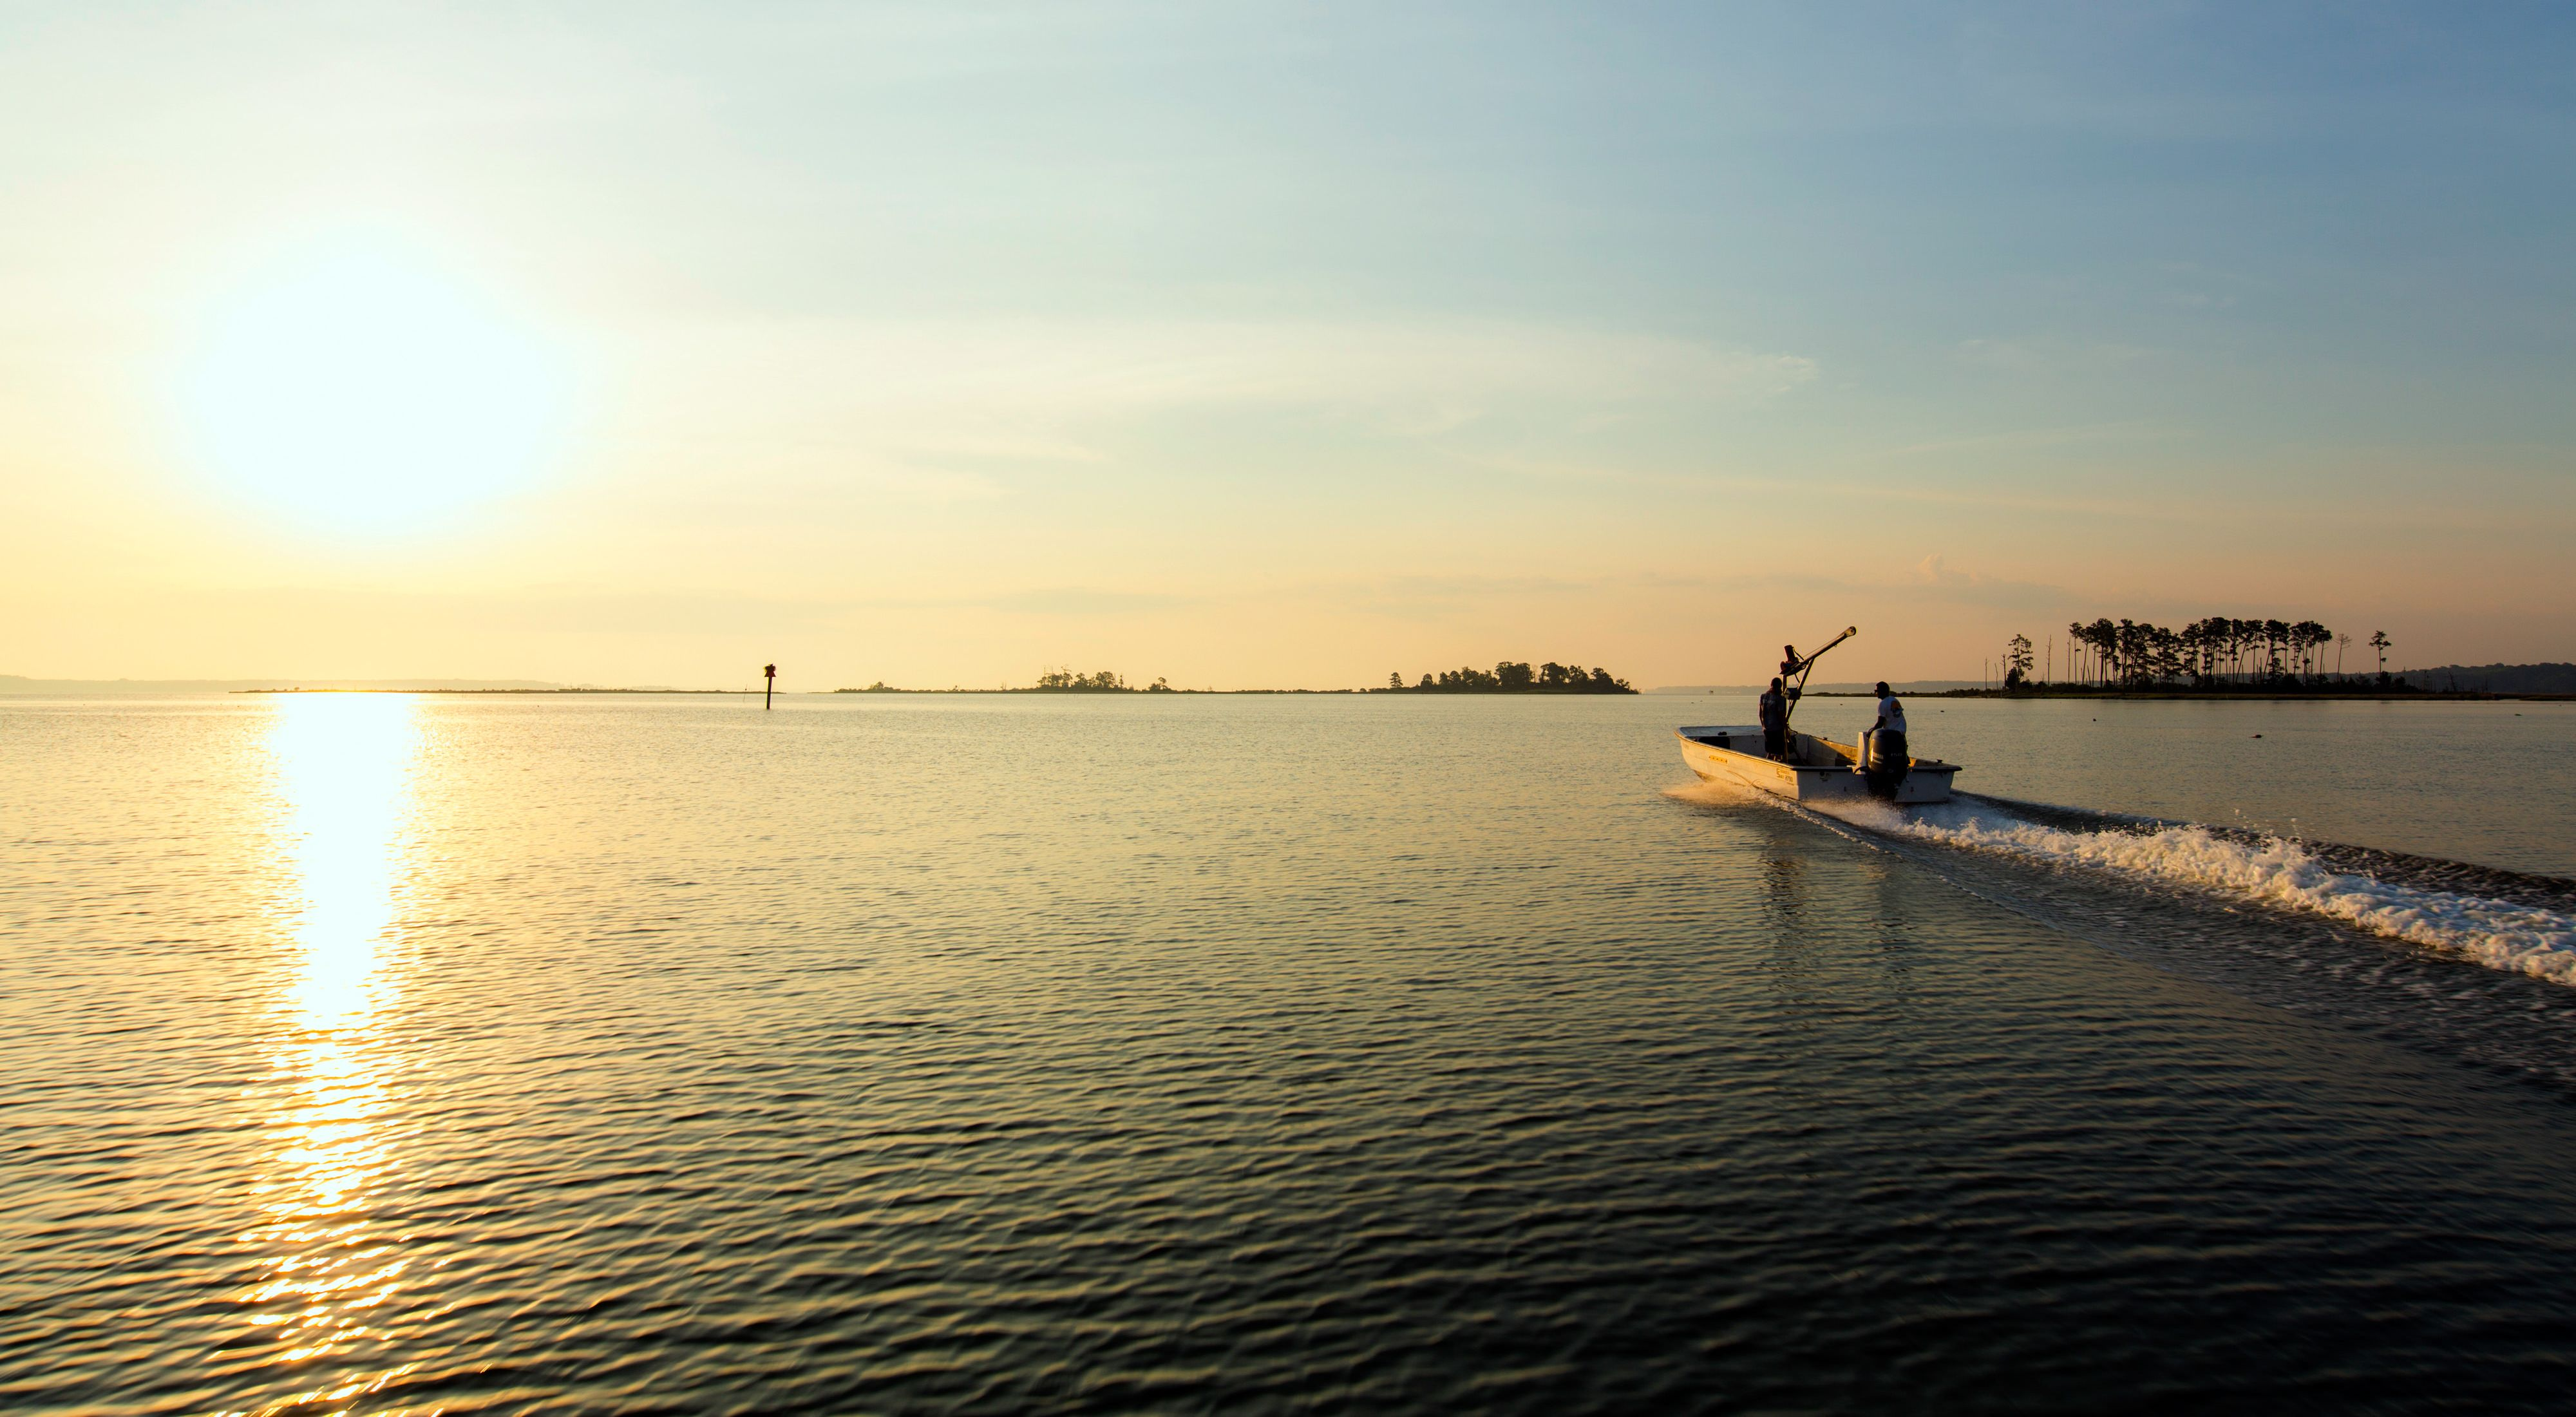 Two men in a flat bottomed jon boat motor into the open water of the Chesapeake Bay. The rising sun reflects off the calm water.